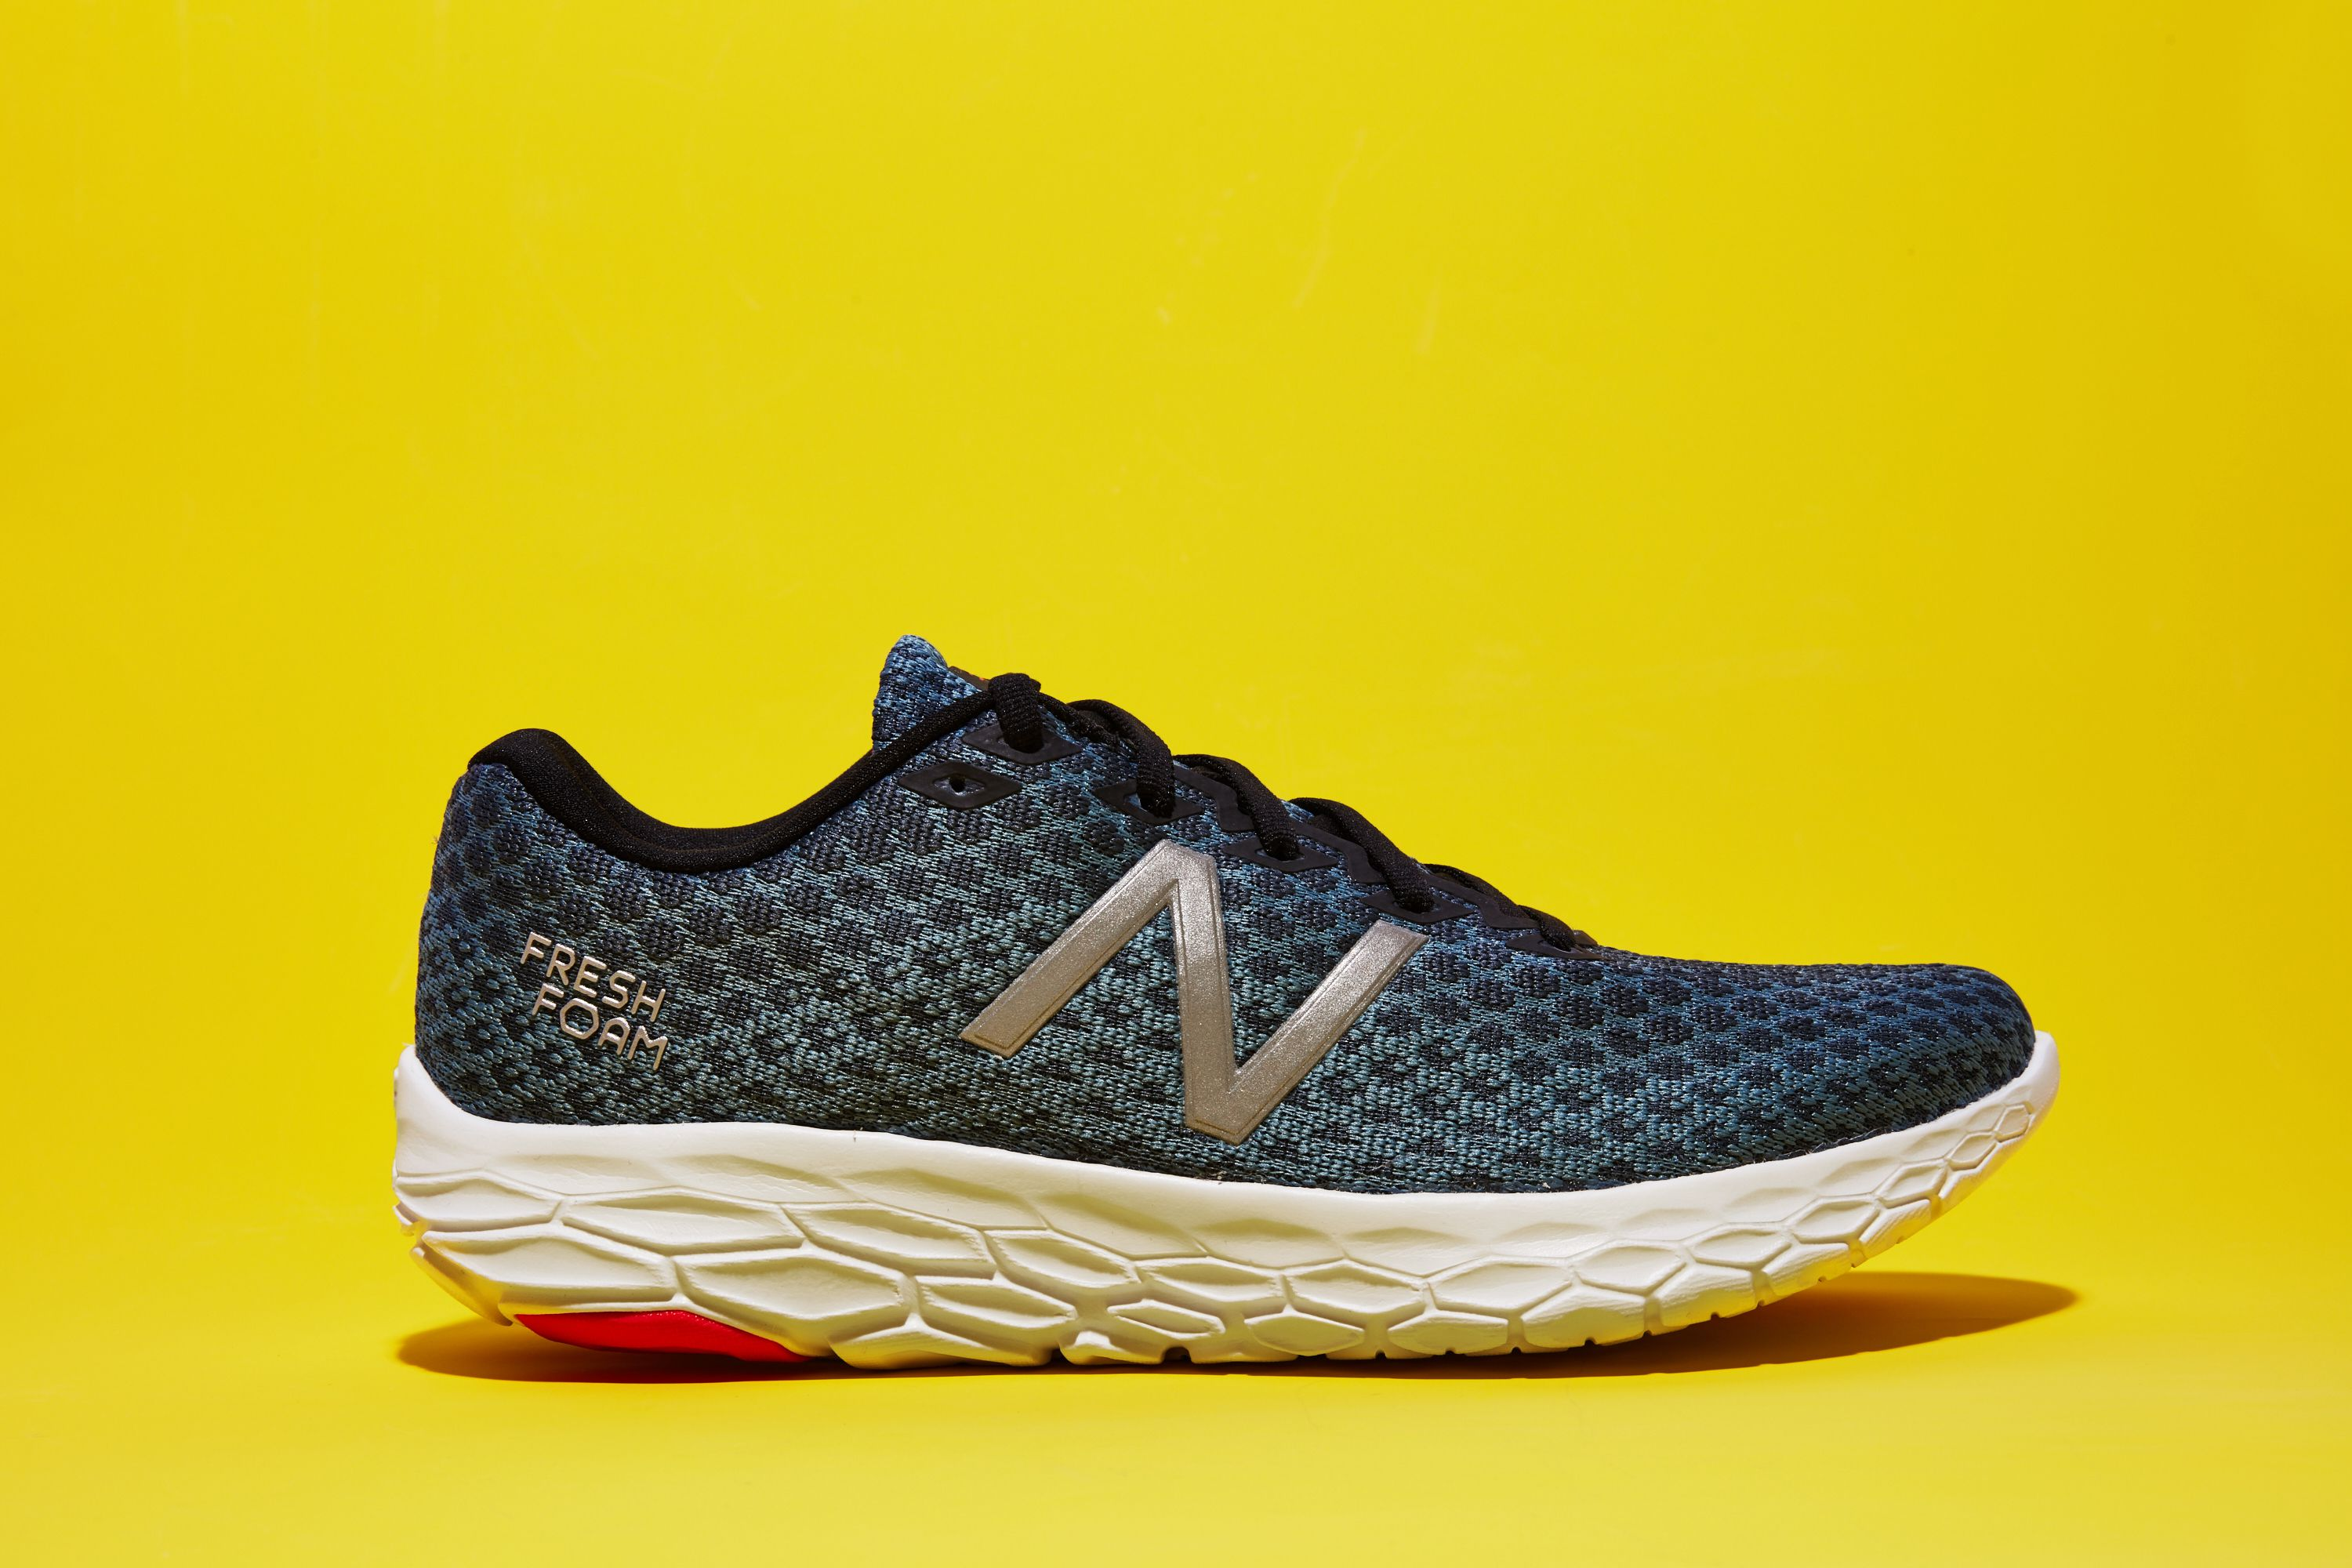 0e5cabd51357e Best New Balance Running Shoes | New Balance Shoe Reviews 2019